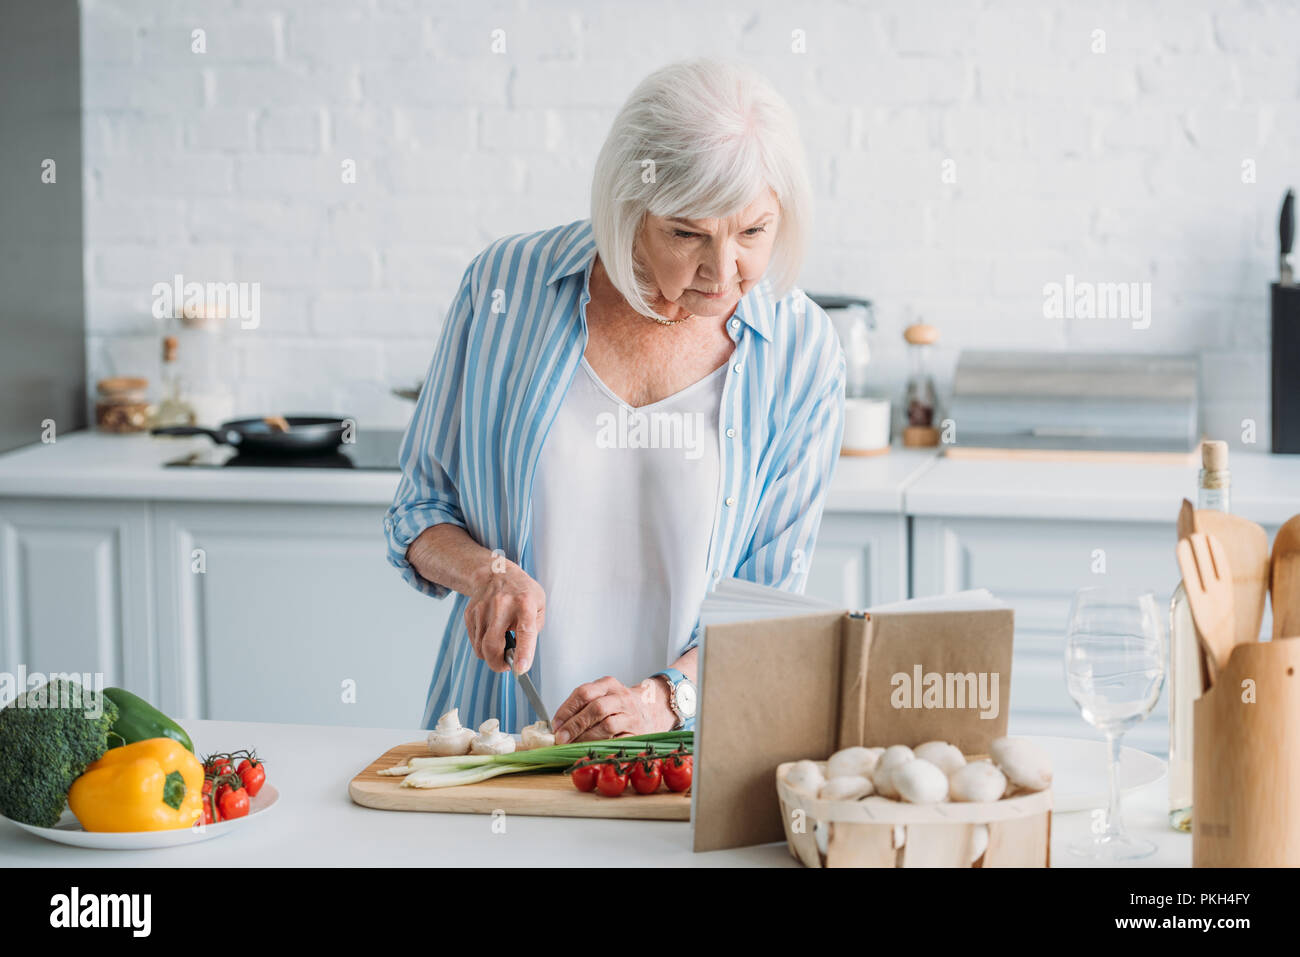 portrait of senior lady looking for recipe in cookery book while cooking dinner at counter in kitchen - Stock Image